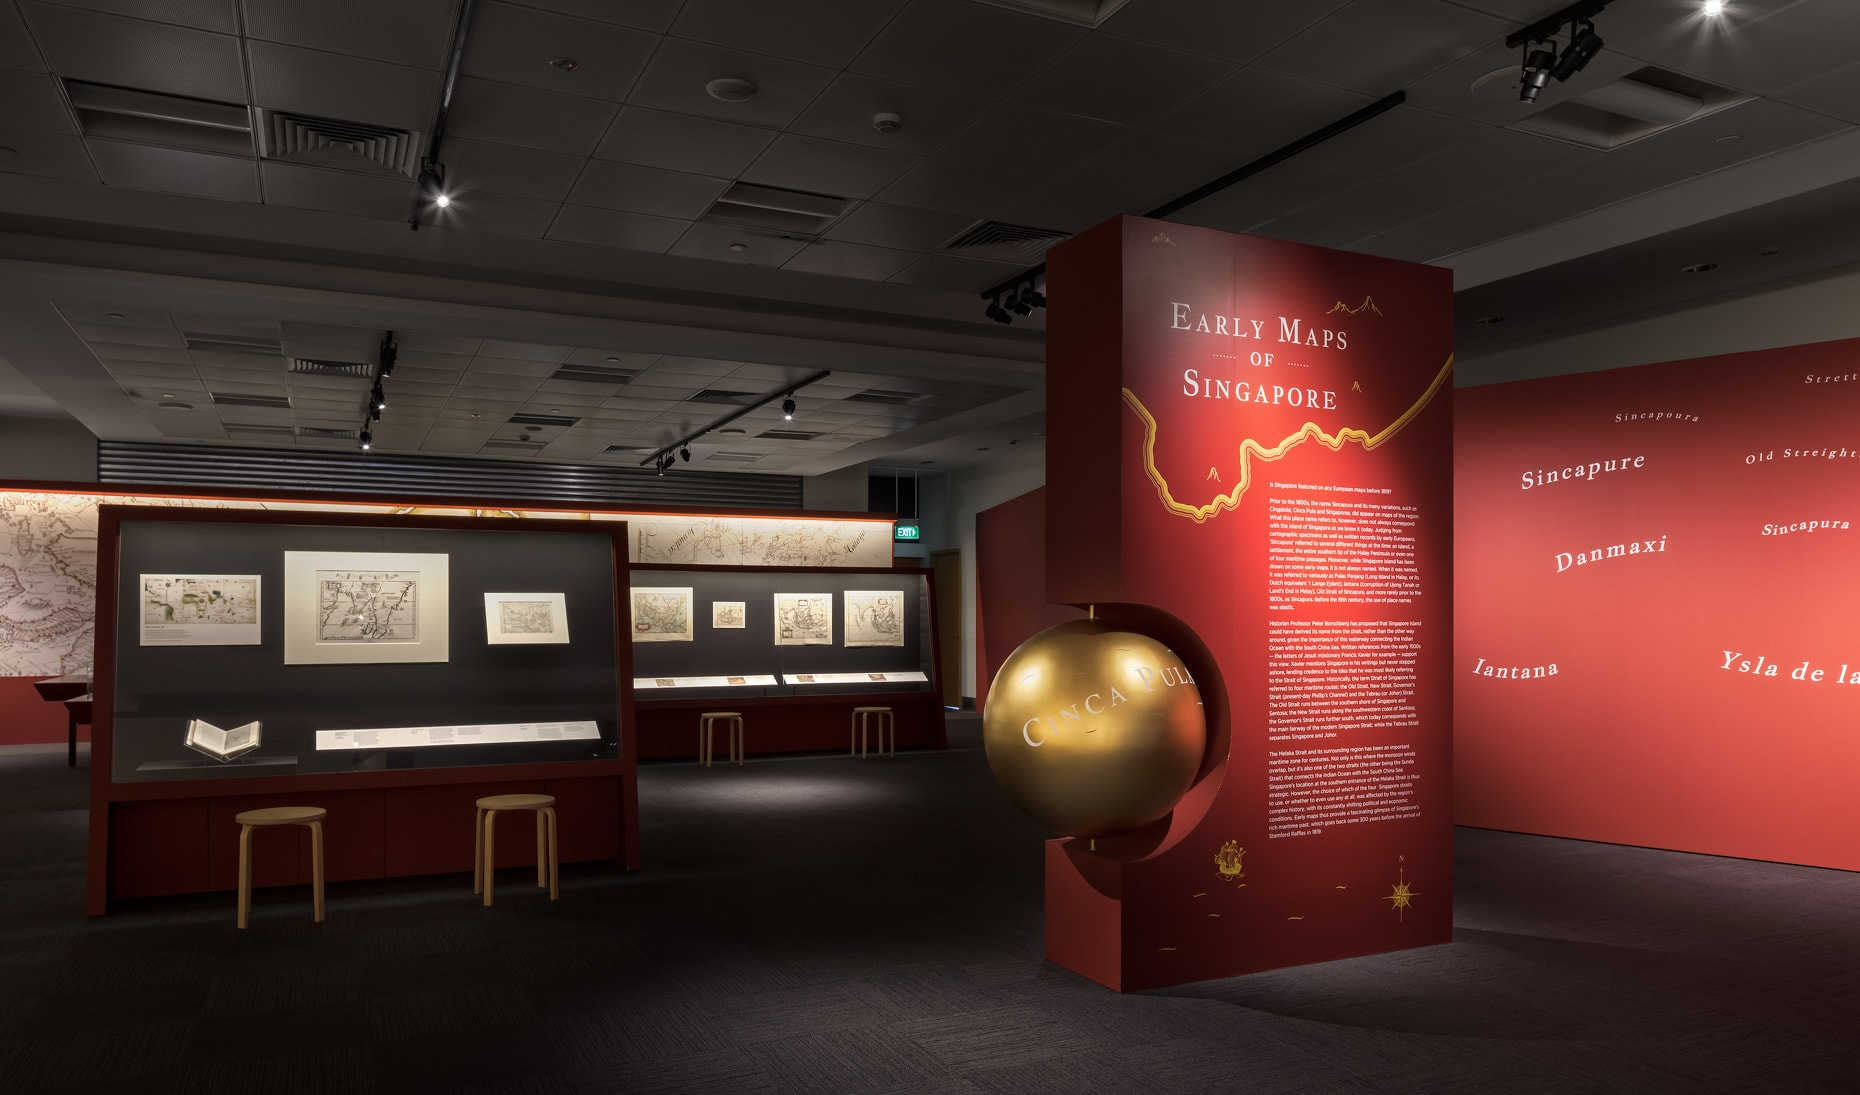 A photo of an exhibition section. The red introduction wall in the middle has a golden globe halfway embedded within it, and its title is Early Maps of Singapore. In the background, several maps are on display. In front of each wall are two chairs and a table showcase.